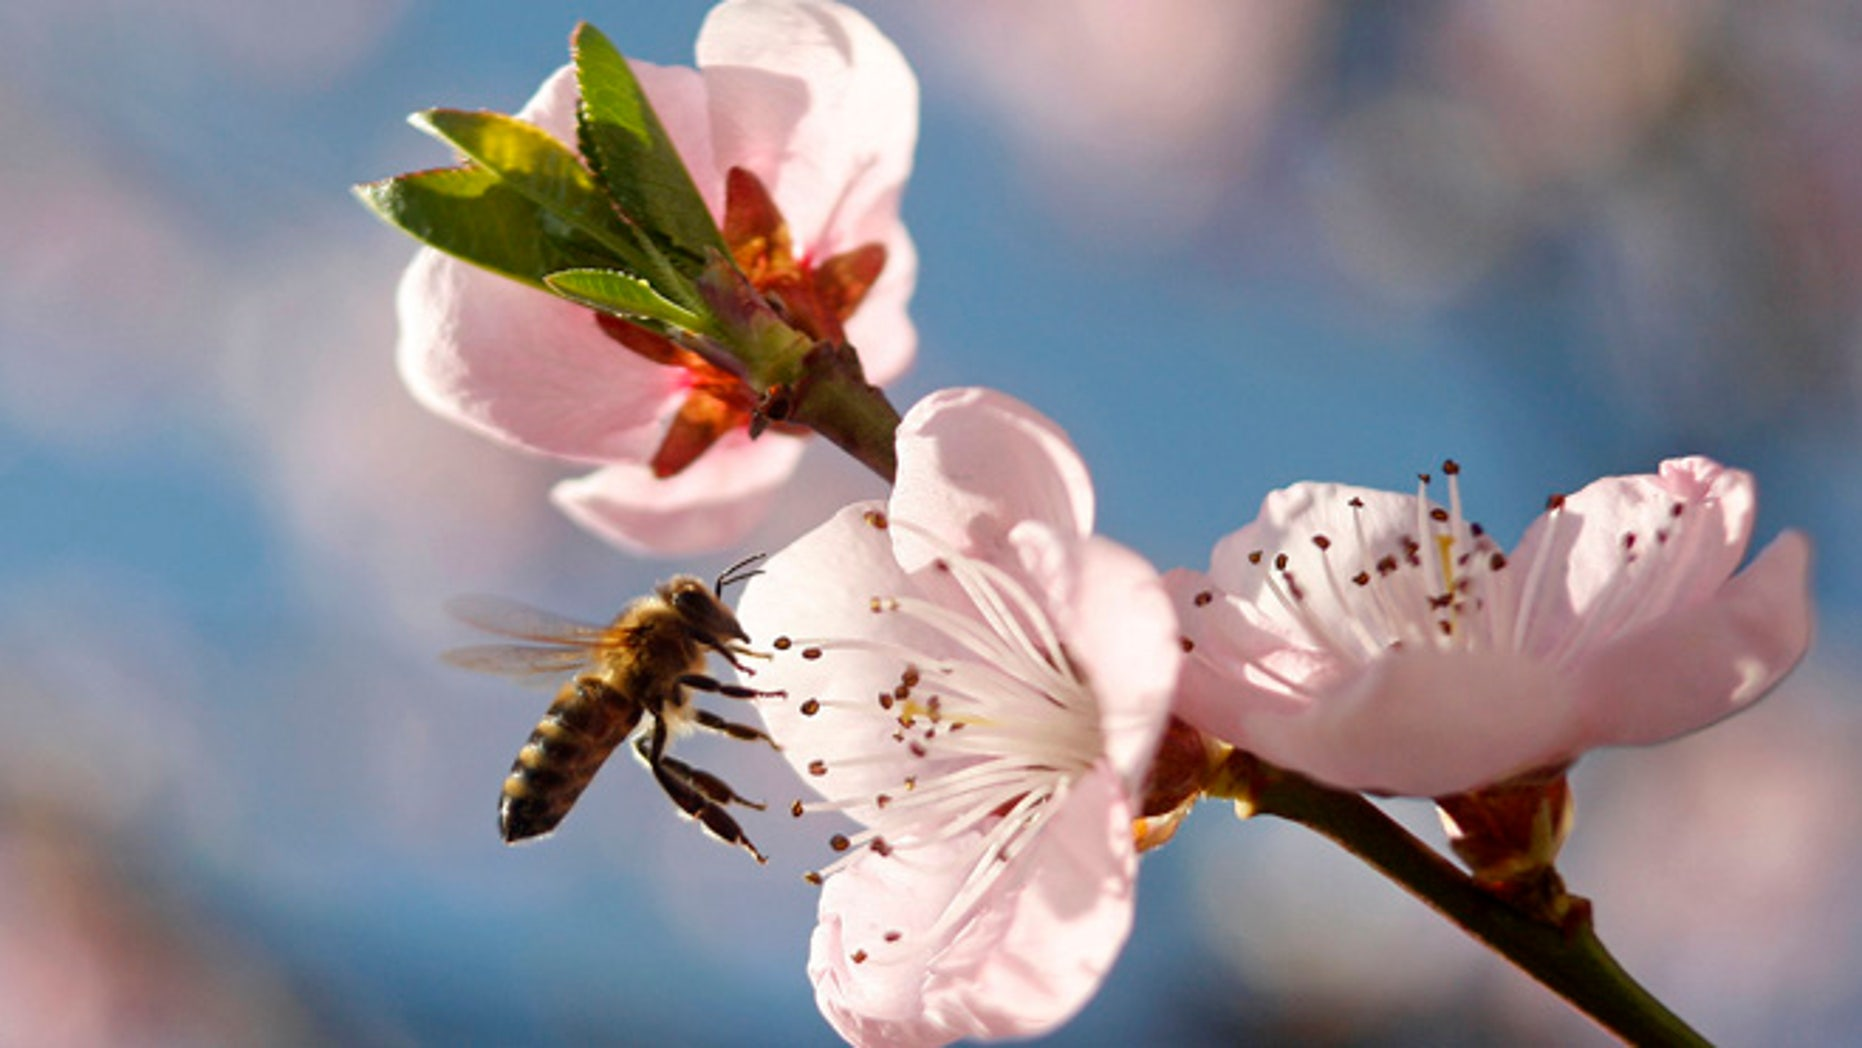 March 29, 2014: A bee flies around peach blossoms in Studencice, Slovenia.